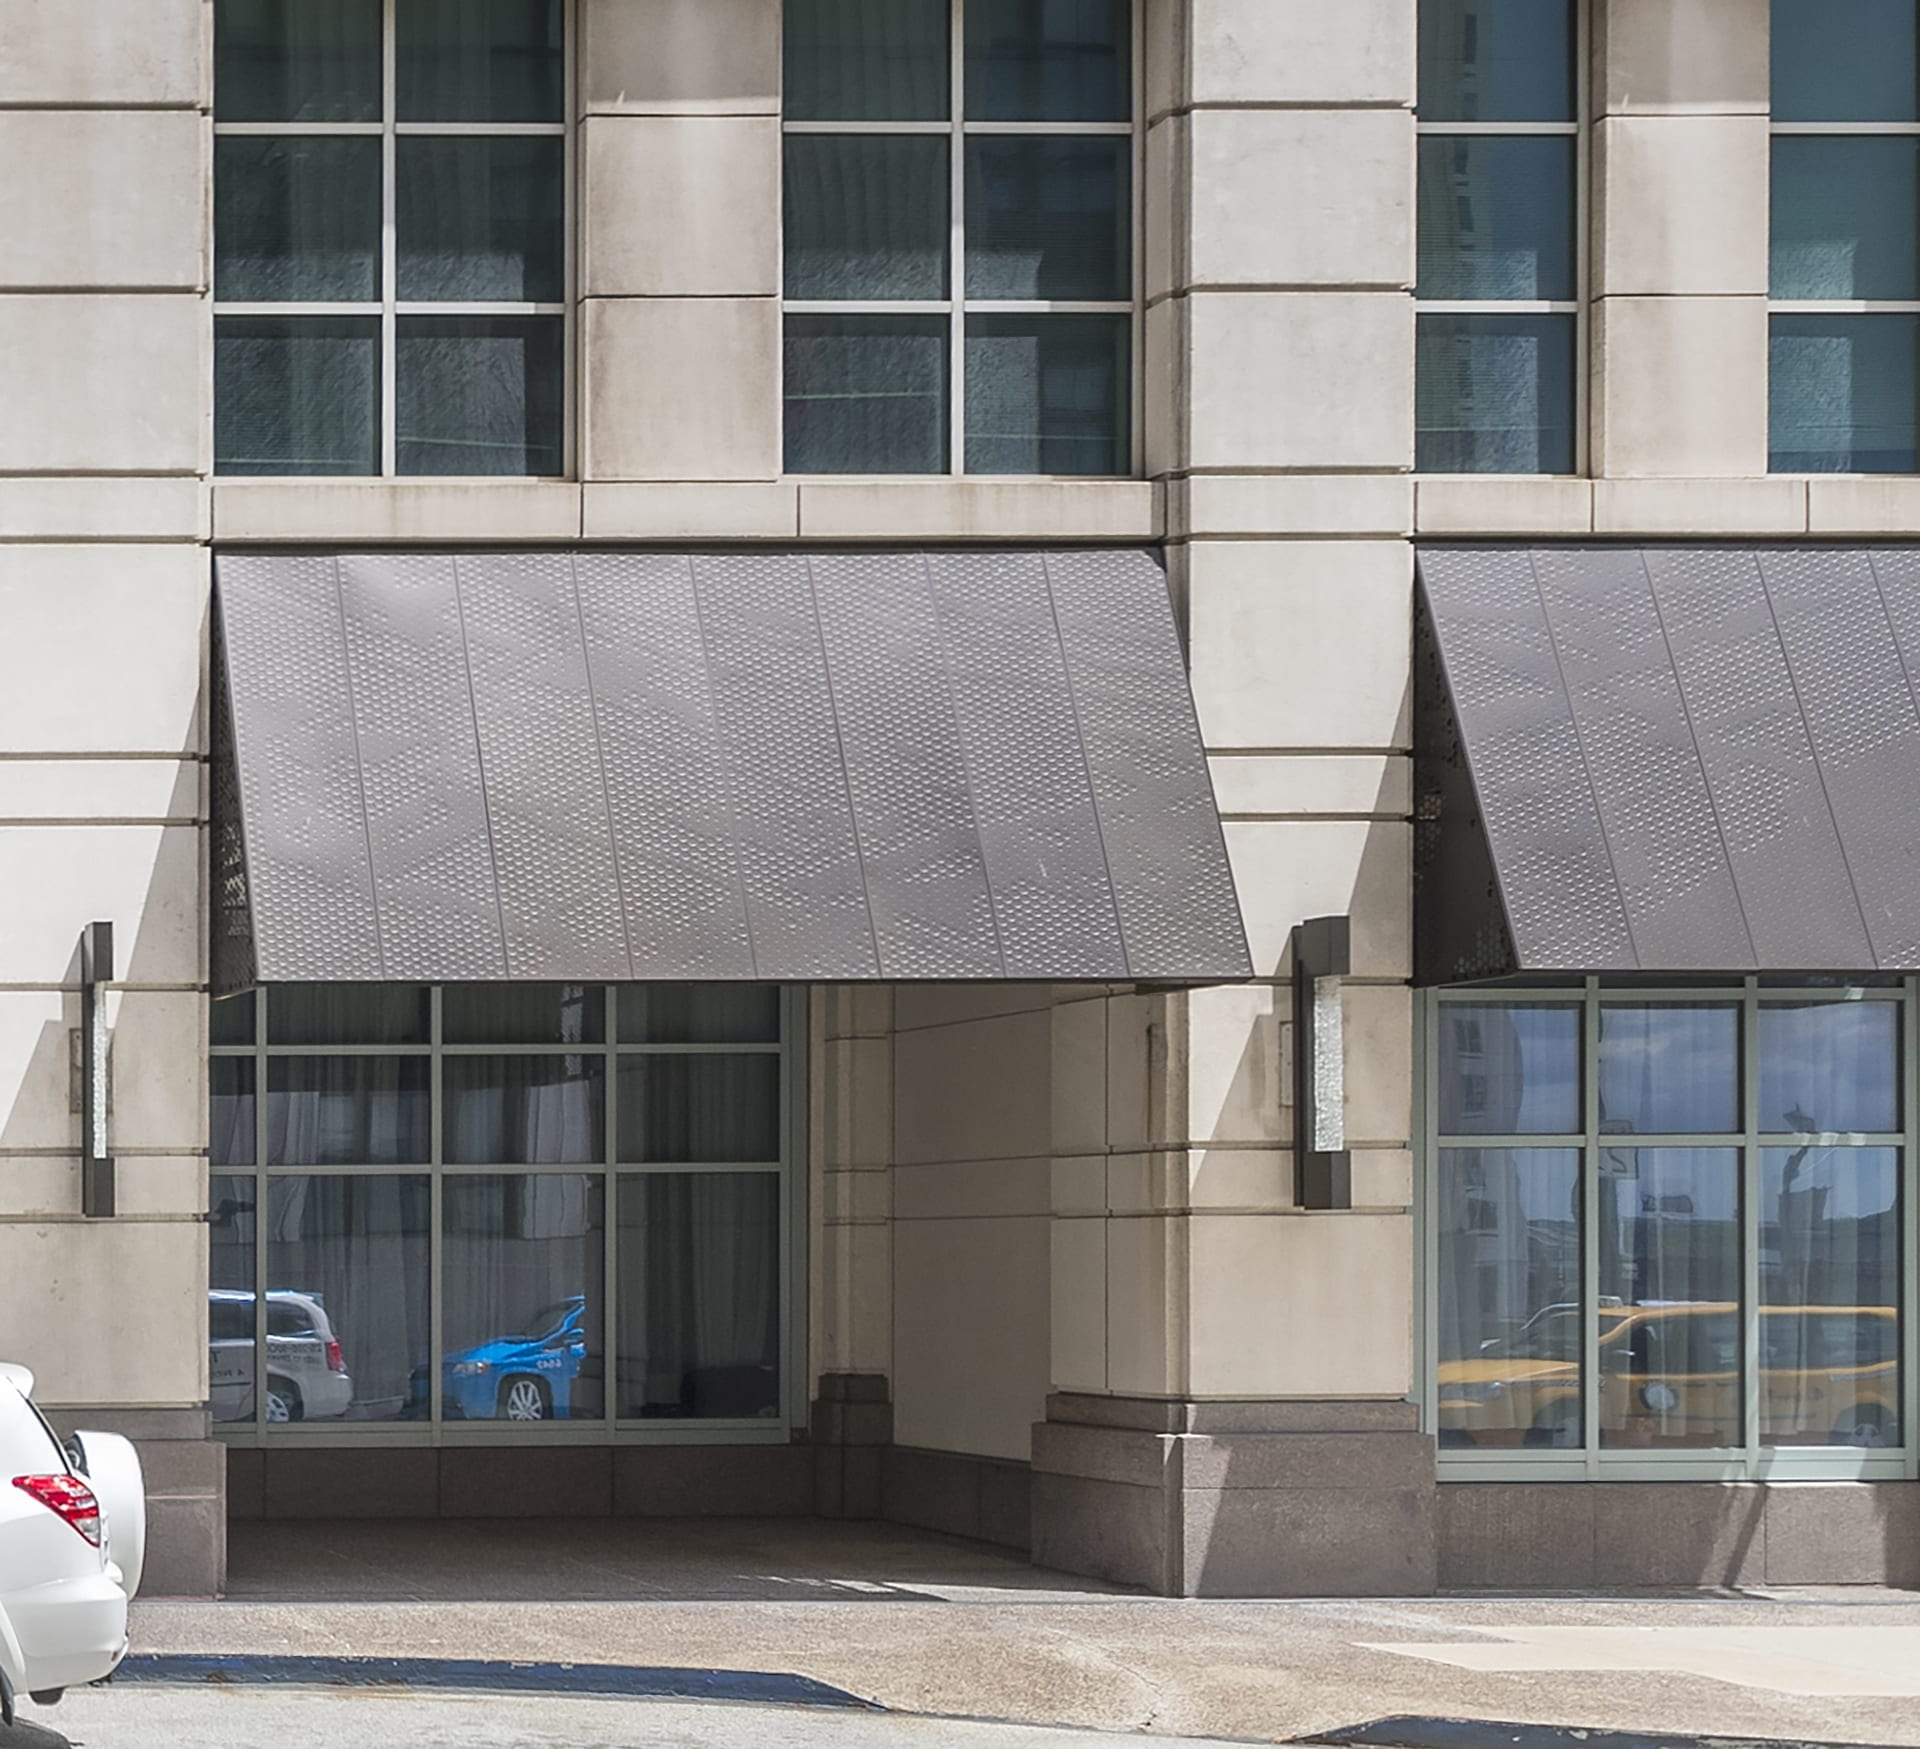 Anodized aluminum panels and structure for a series of awnings. Raised circles on the front create a pattern while still protecting from the elements.